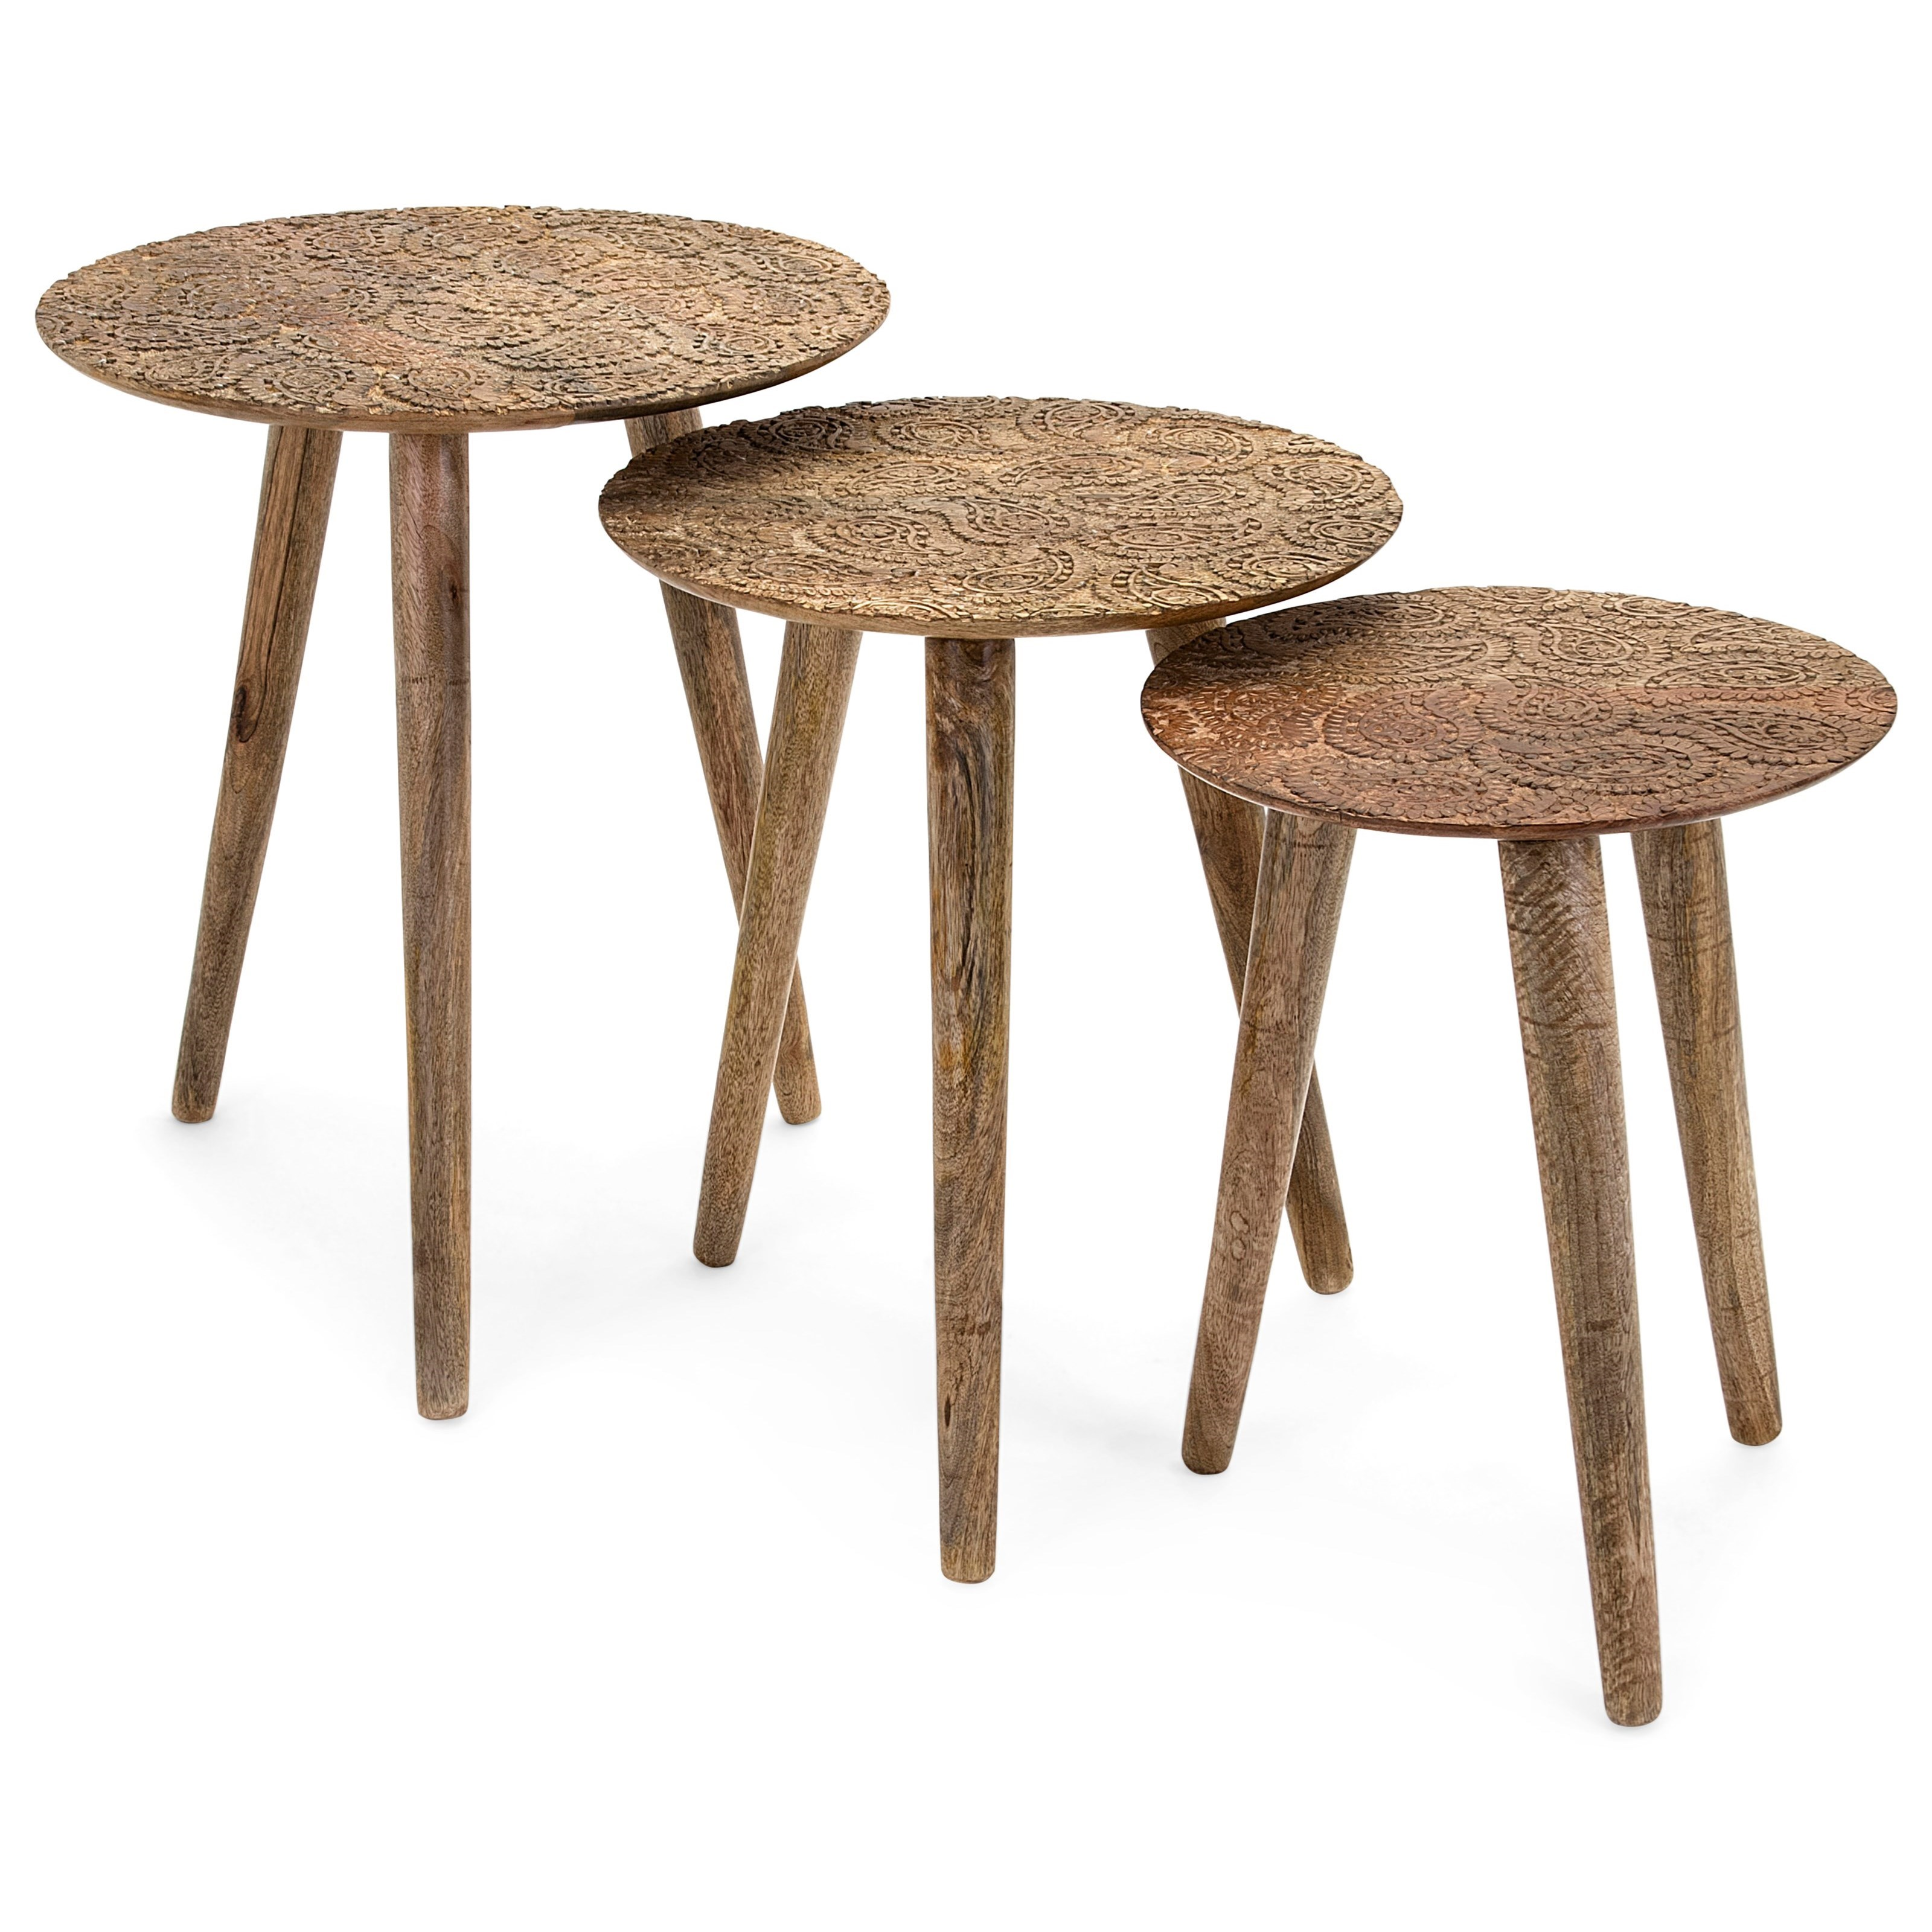 Accent Tables and Cabinets Inigo Round Tables - Set of 3 by IMAX Worldwide Home at Alison Craig Home Furnishings